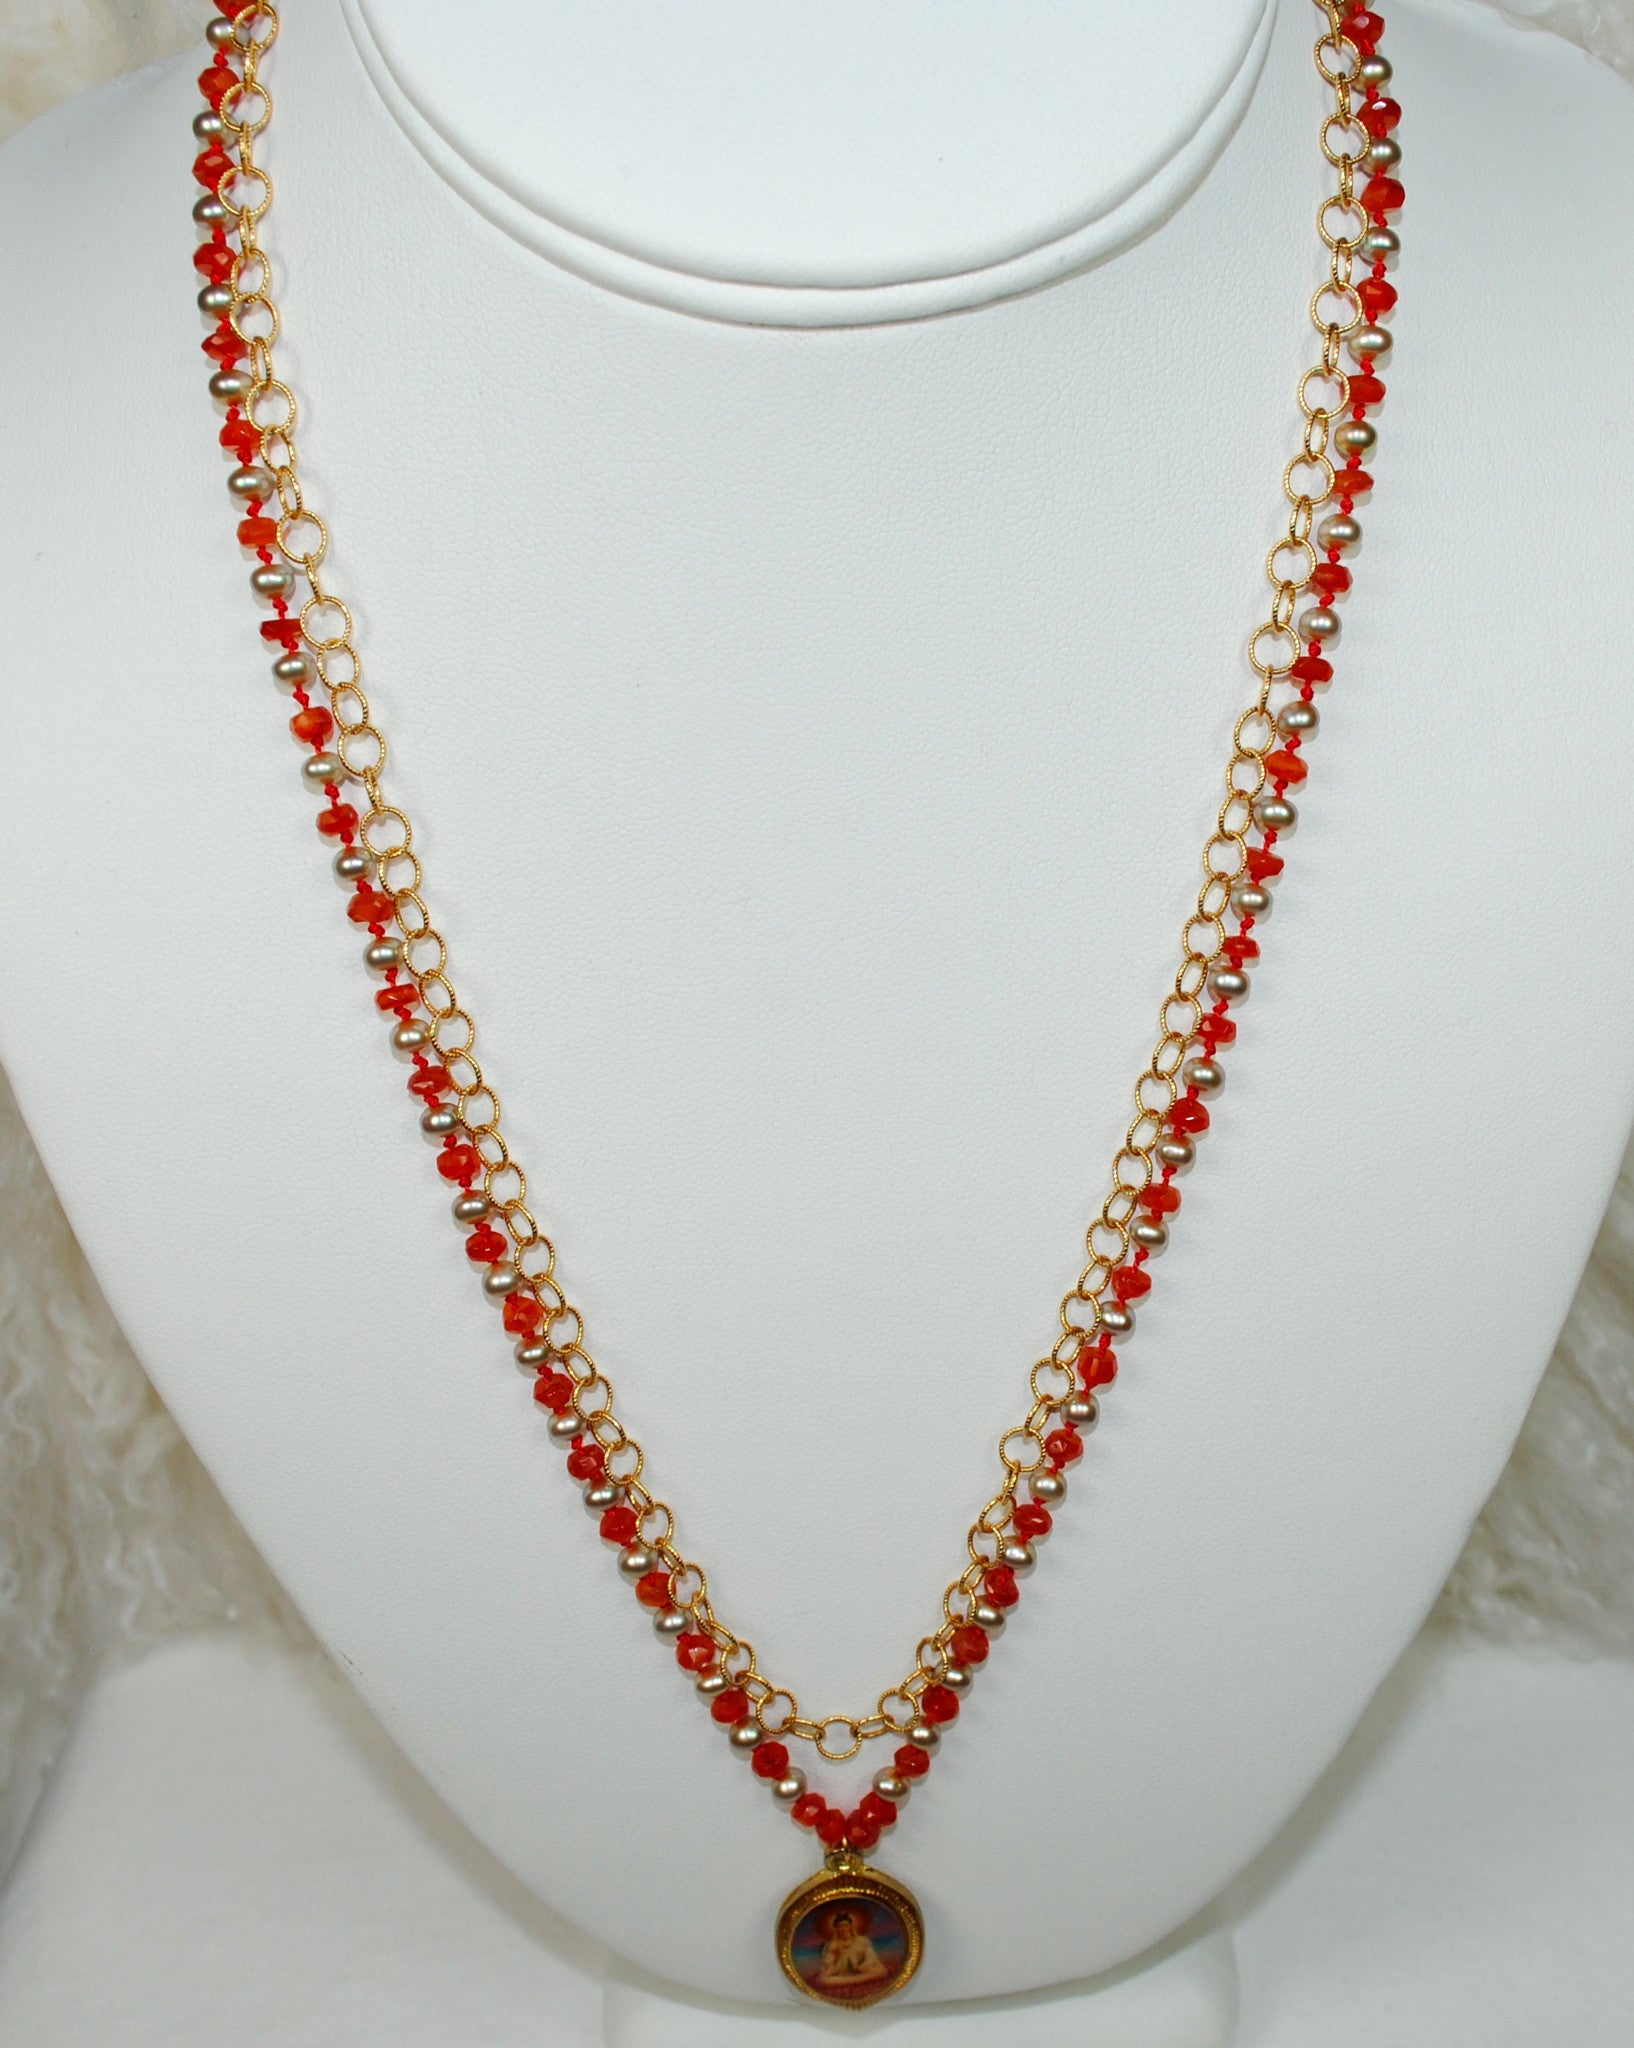 Double Strand Pendant Necklace w/ Gold Chain